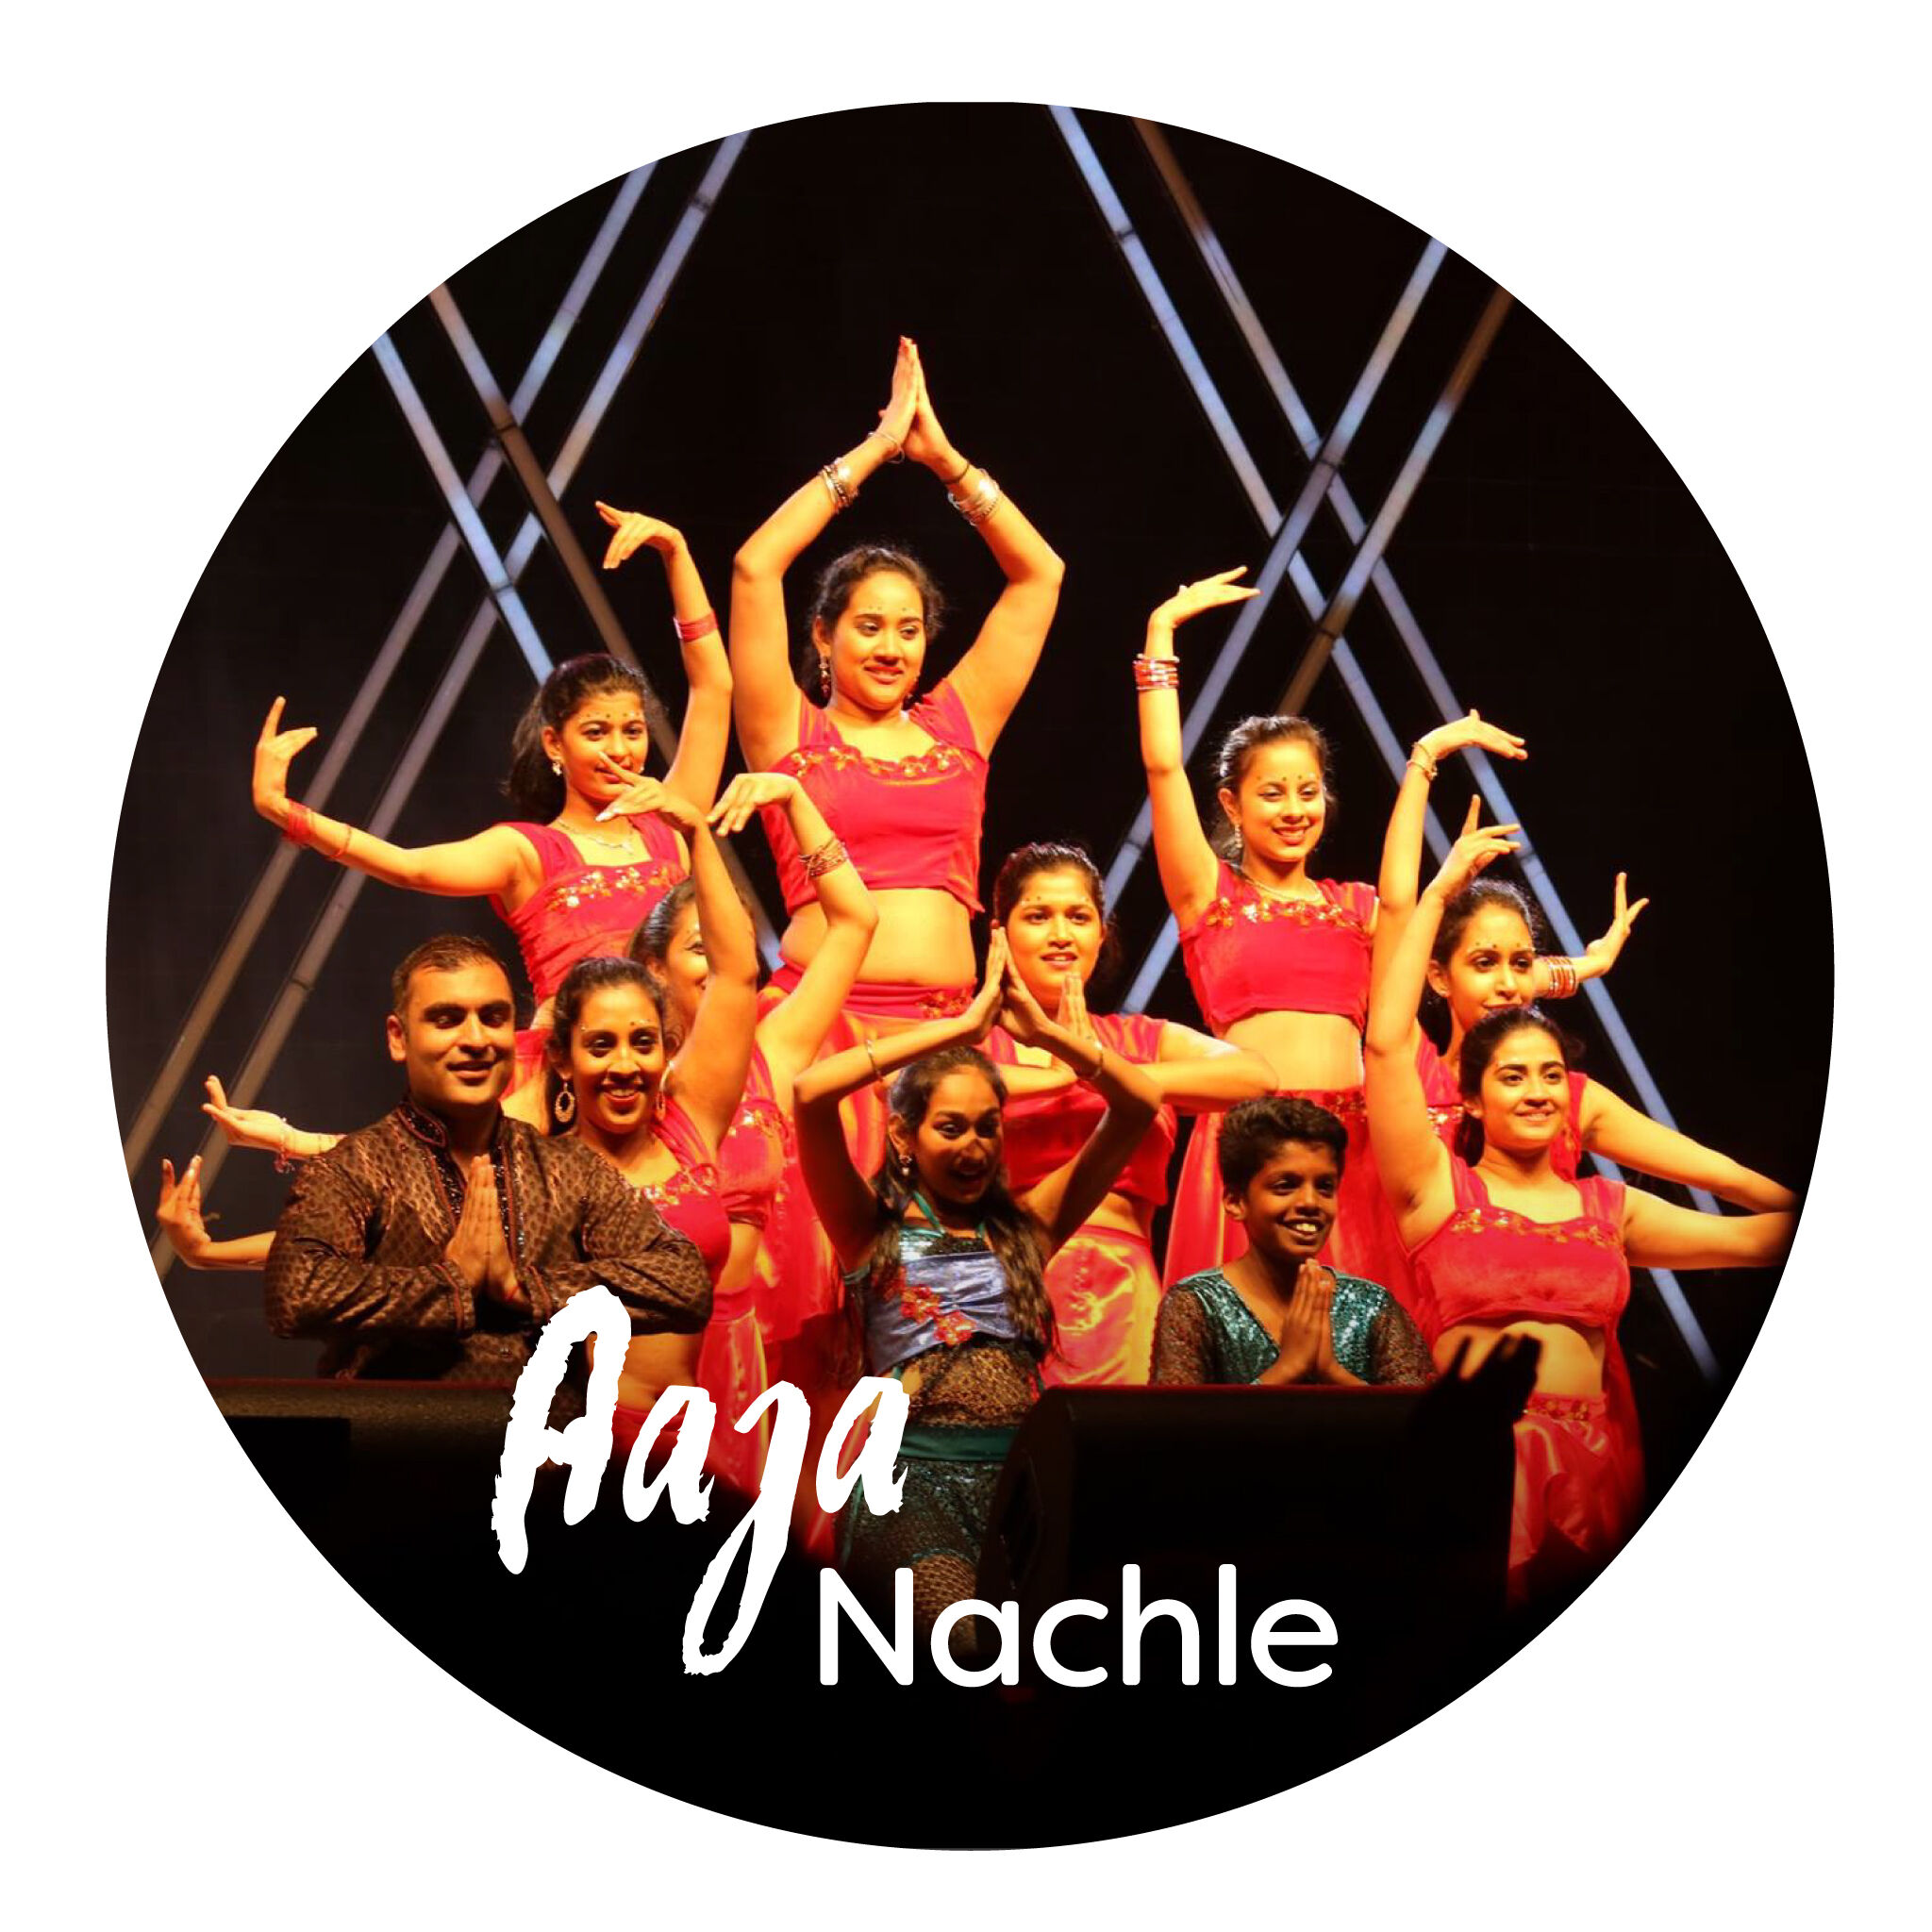 A picture of Aaja Nachle